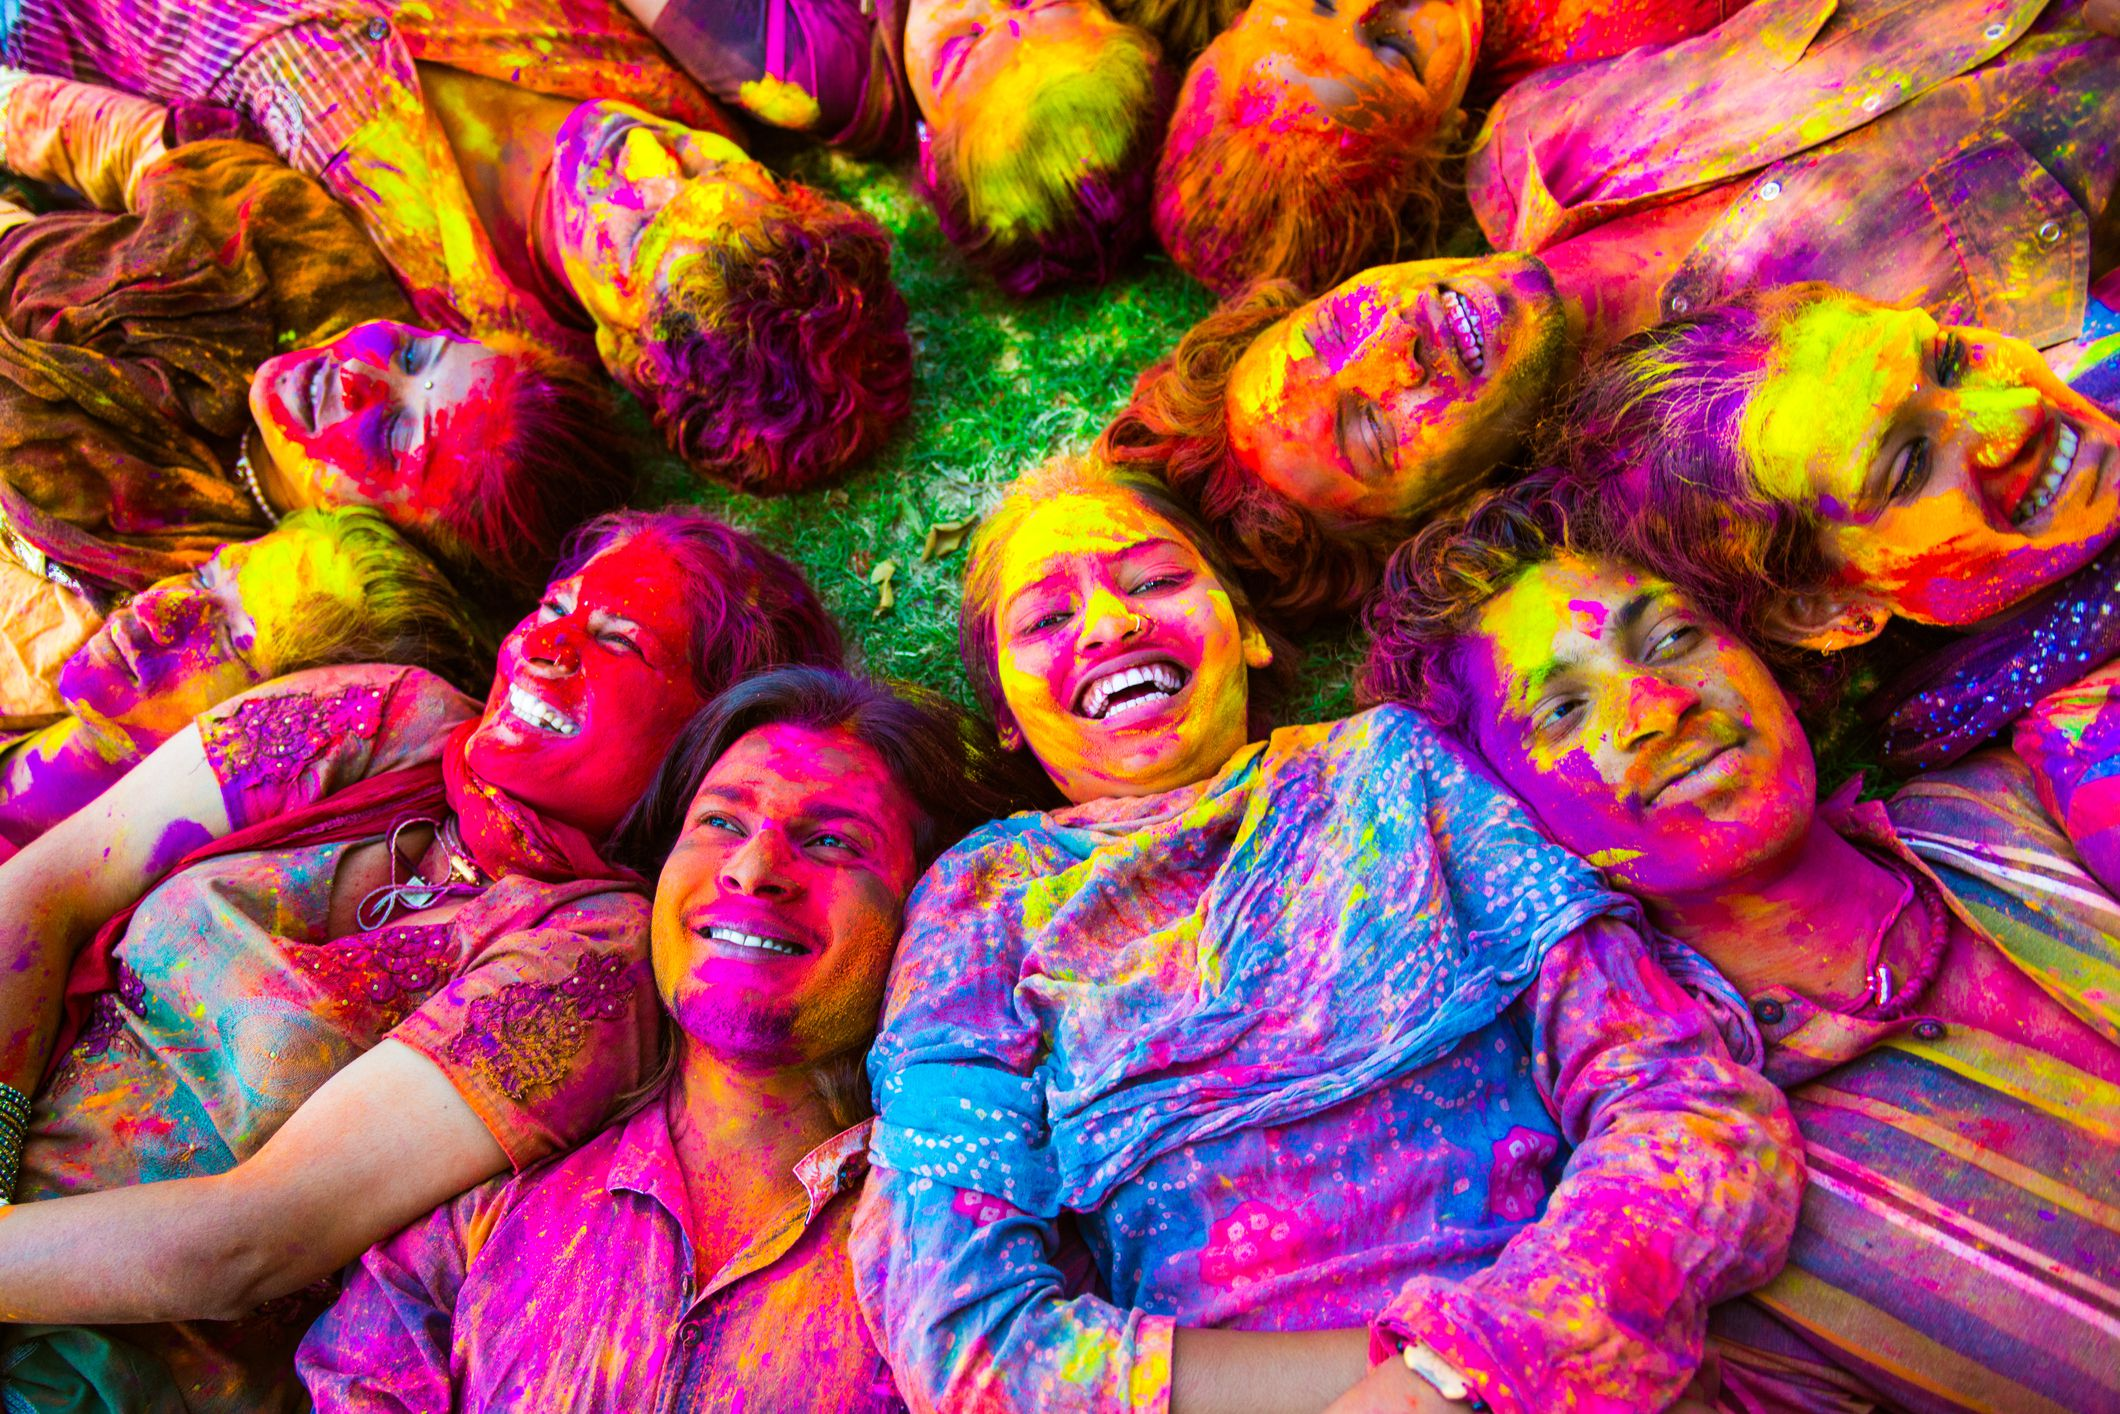 Holi Photo: See Pictures Of Holi In This Colorful Holi Photo Gallery